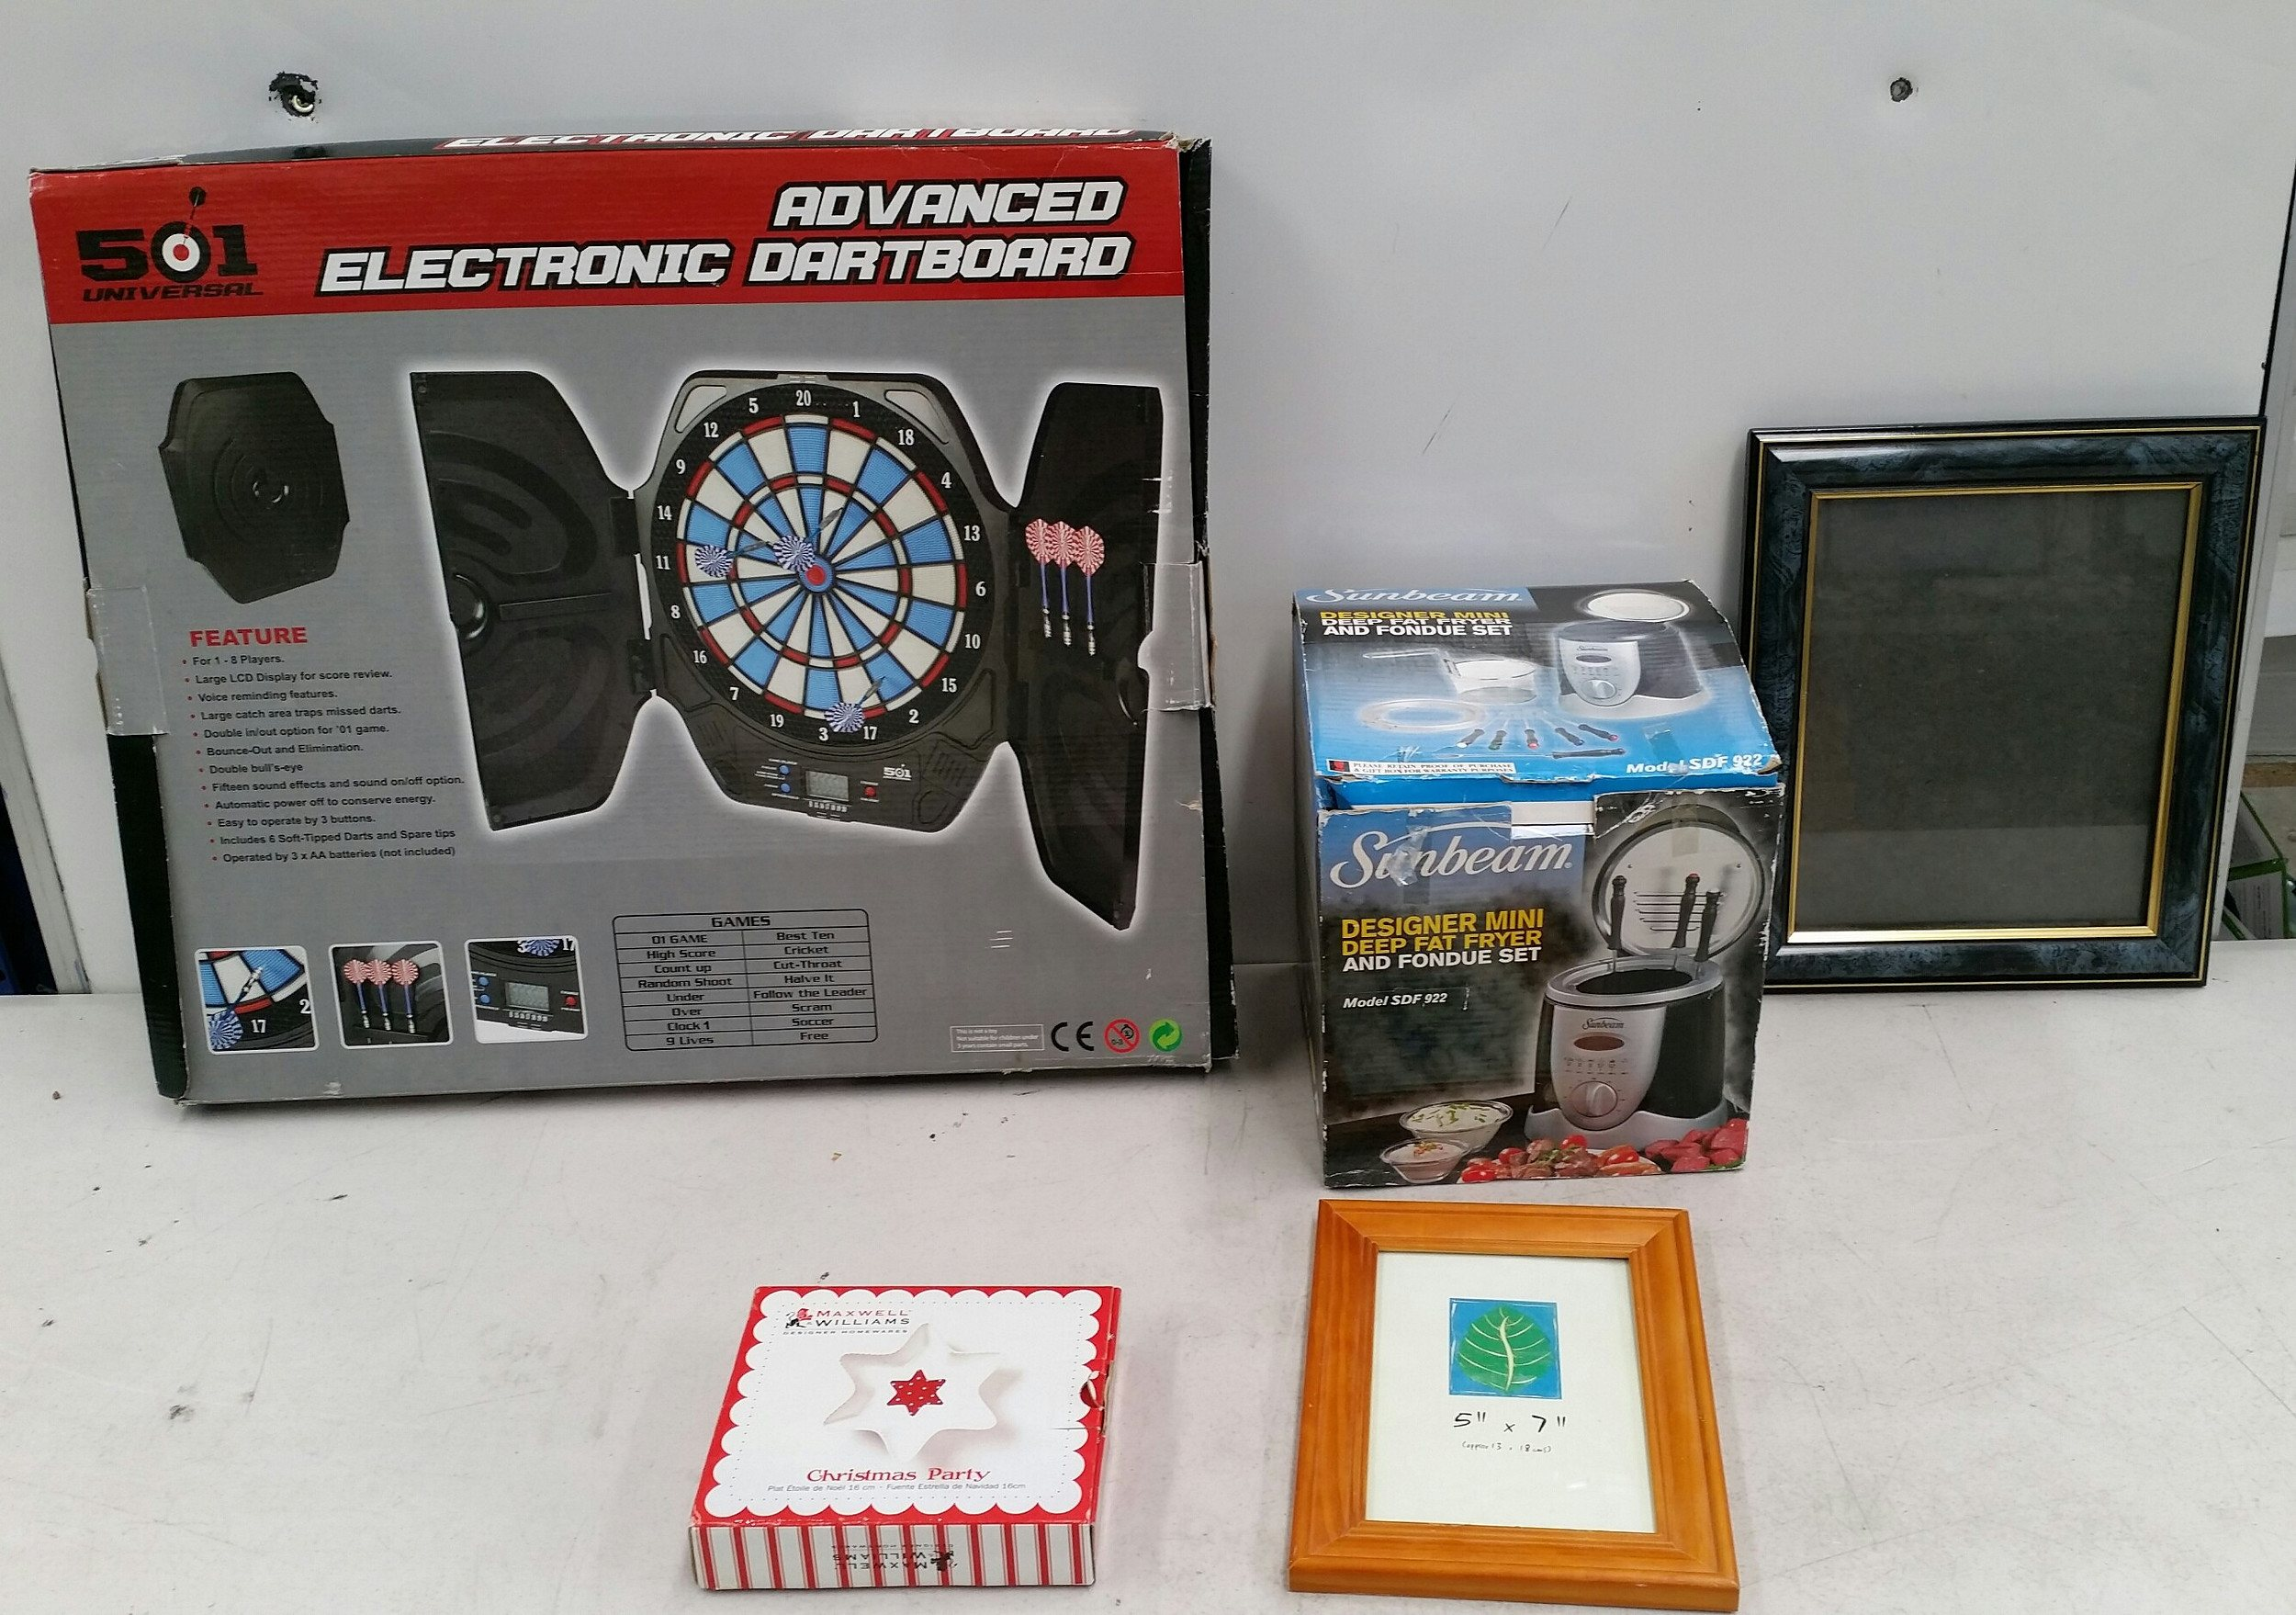 Mixed Household Goods Including 501 Universal Advanced Electronic Dartboard